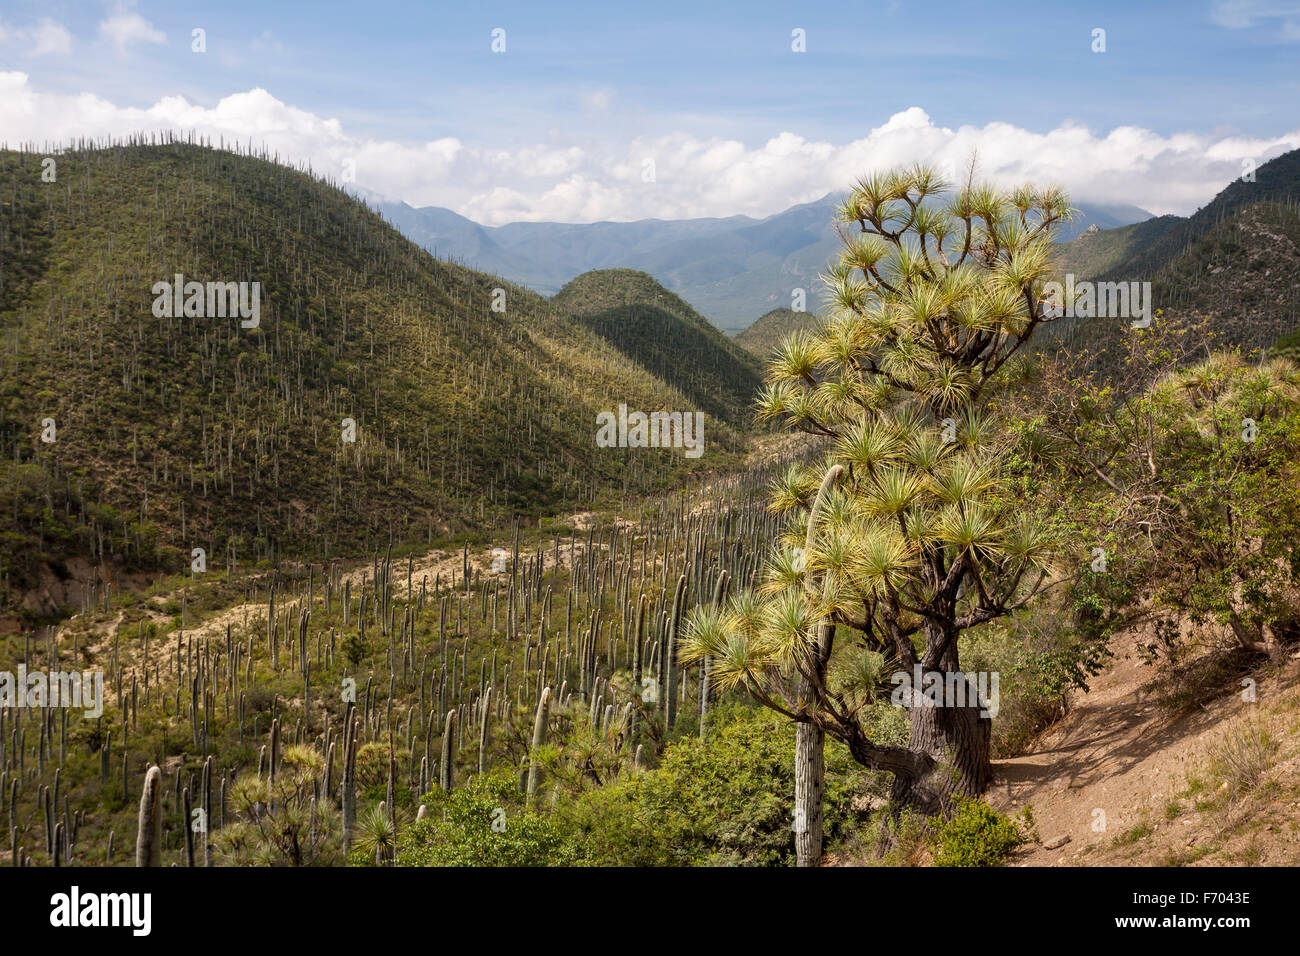 Wild Pony Tail Palm in Tehuacan Cuicatlan Reserve, Puebla, Mexico. - Stock Image